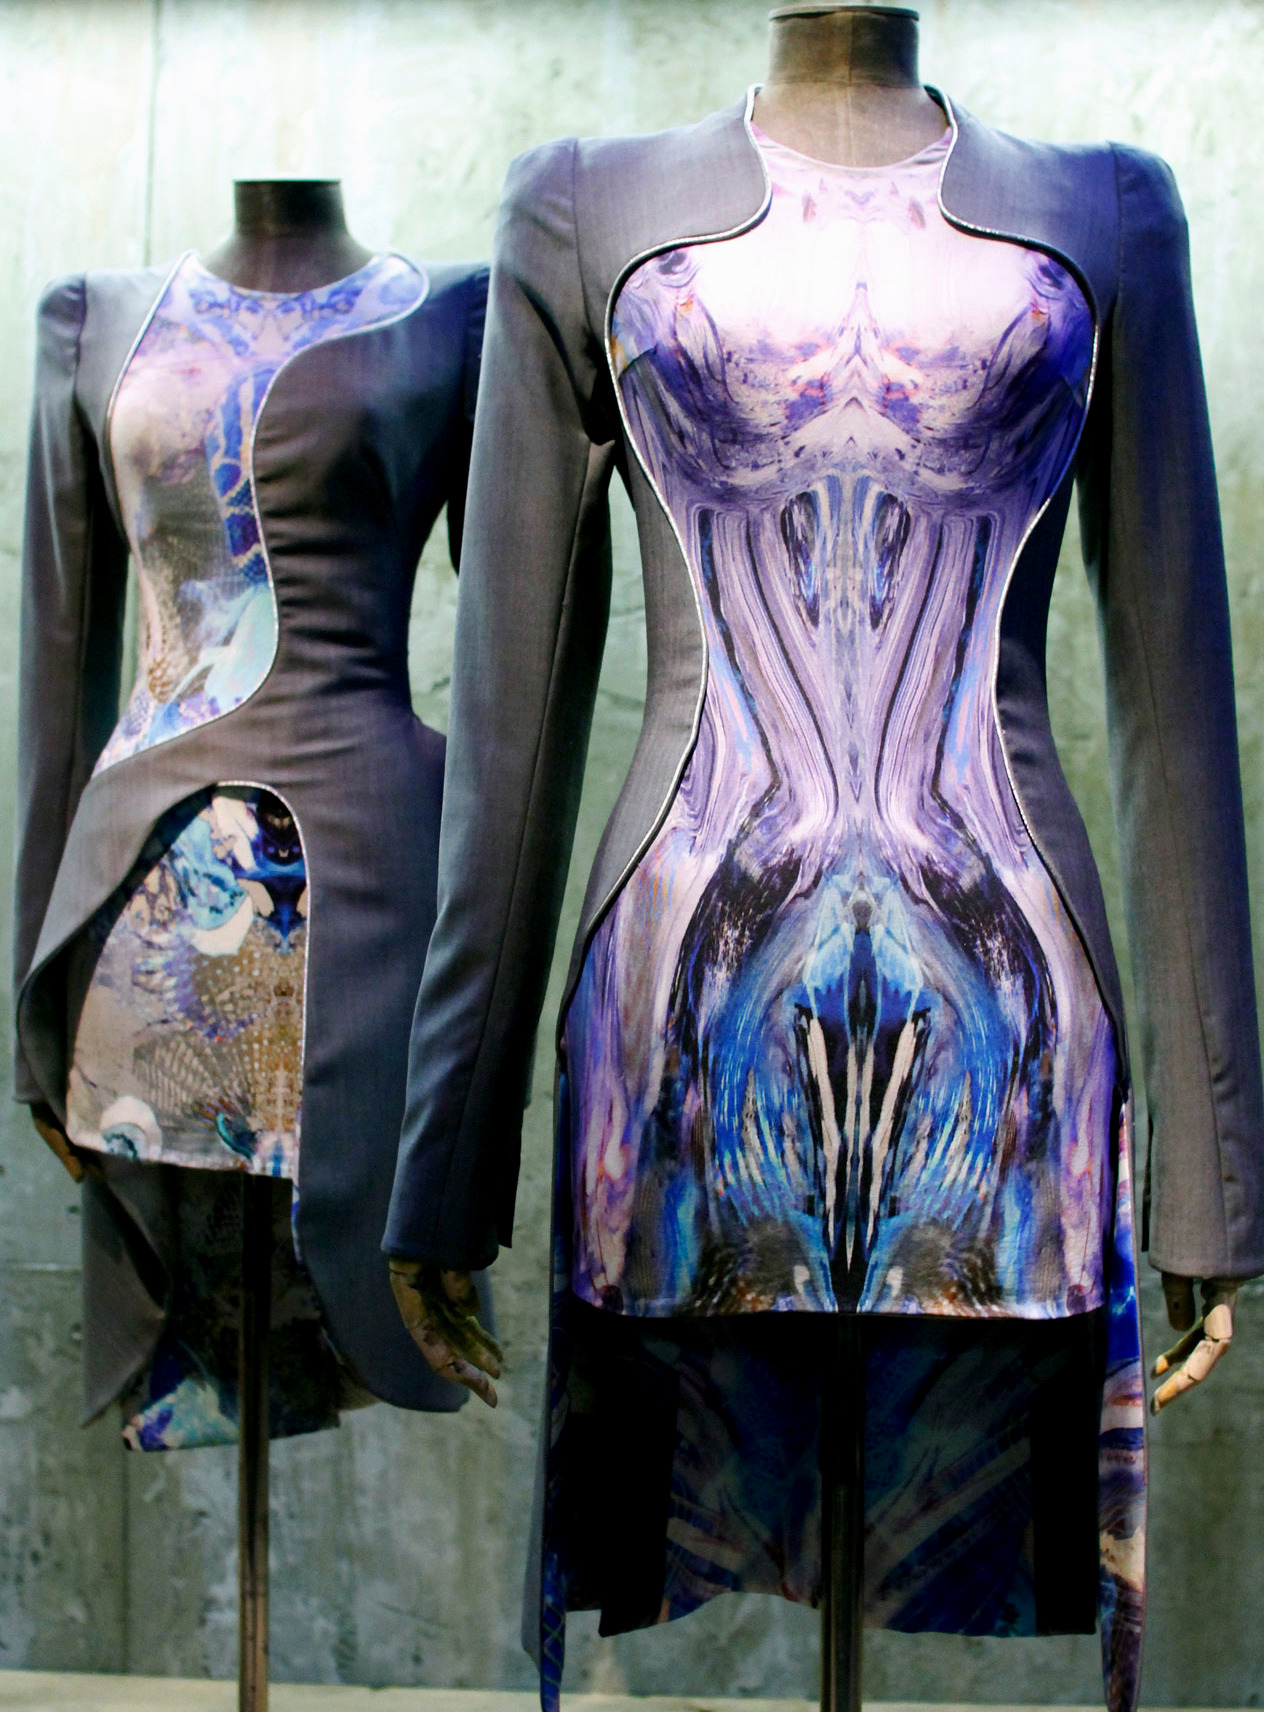 Alexander McQueen Spring 2010 on display at the Savage Beauty Exhibition.